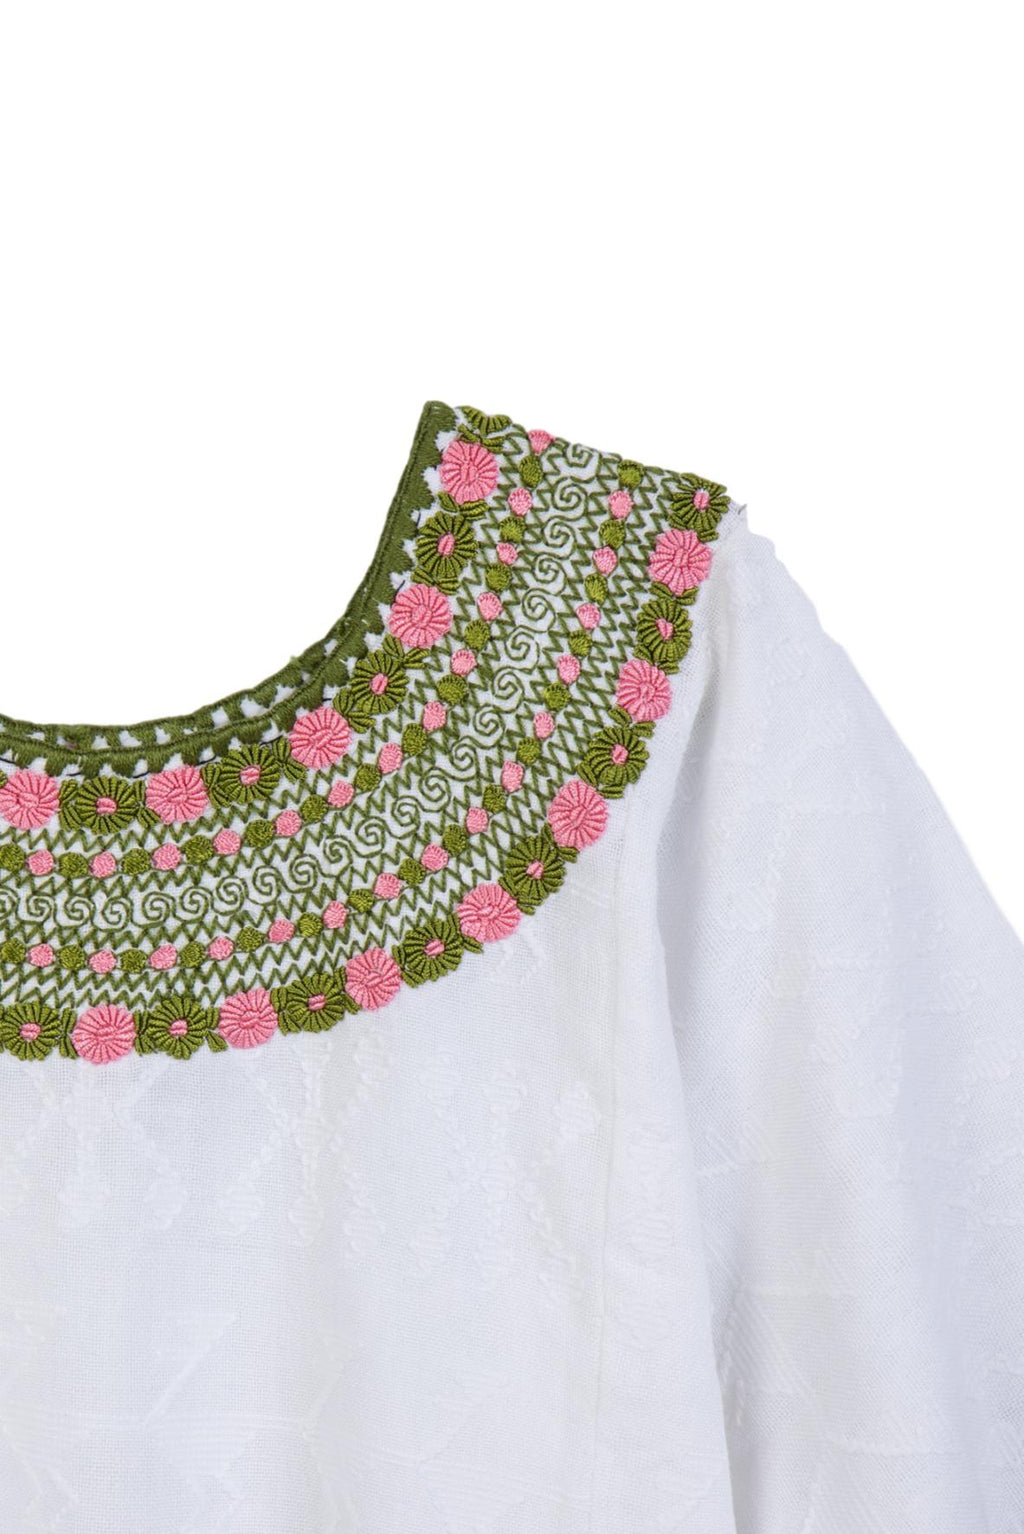 pink and green embroidered blouse with crochet detail